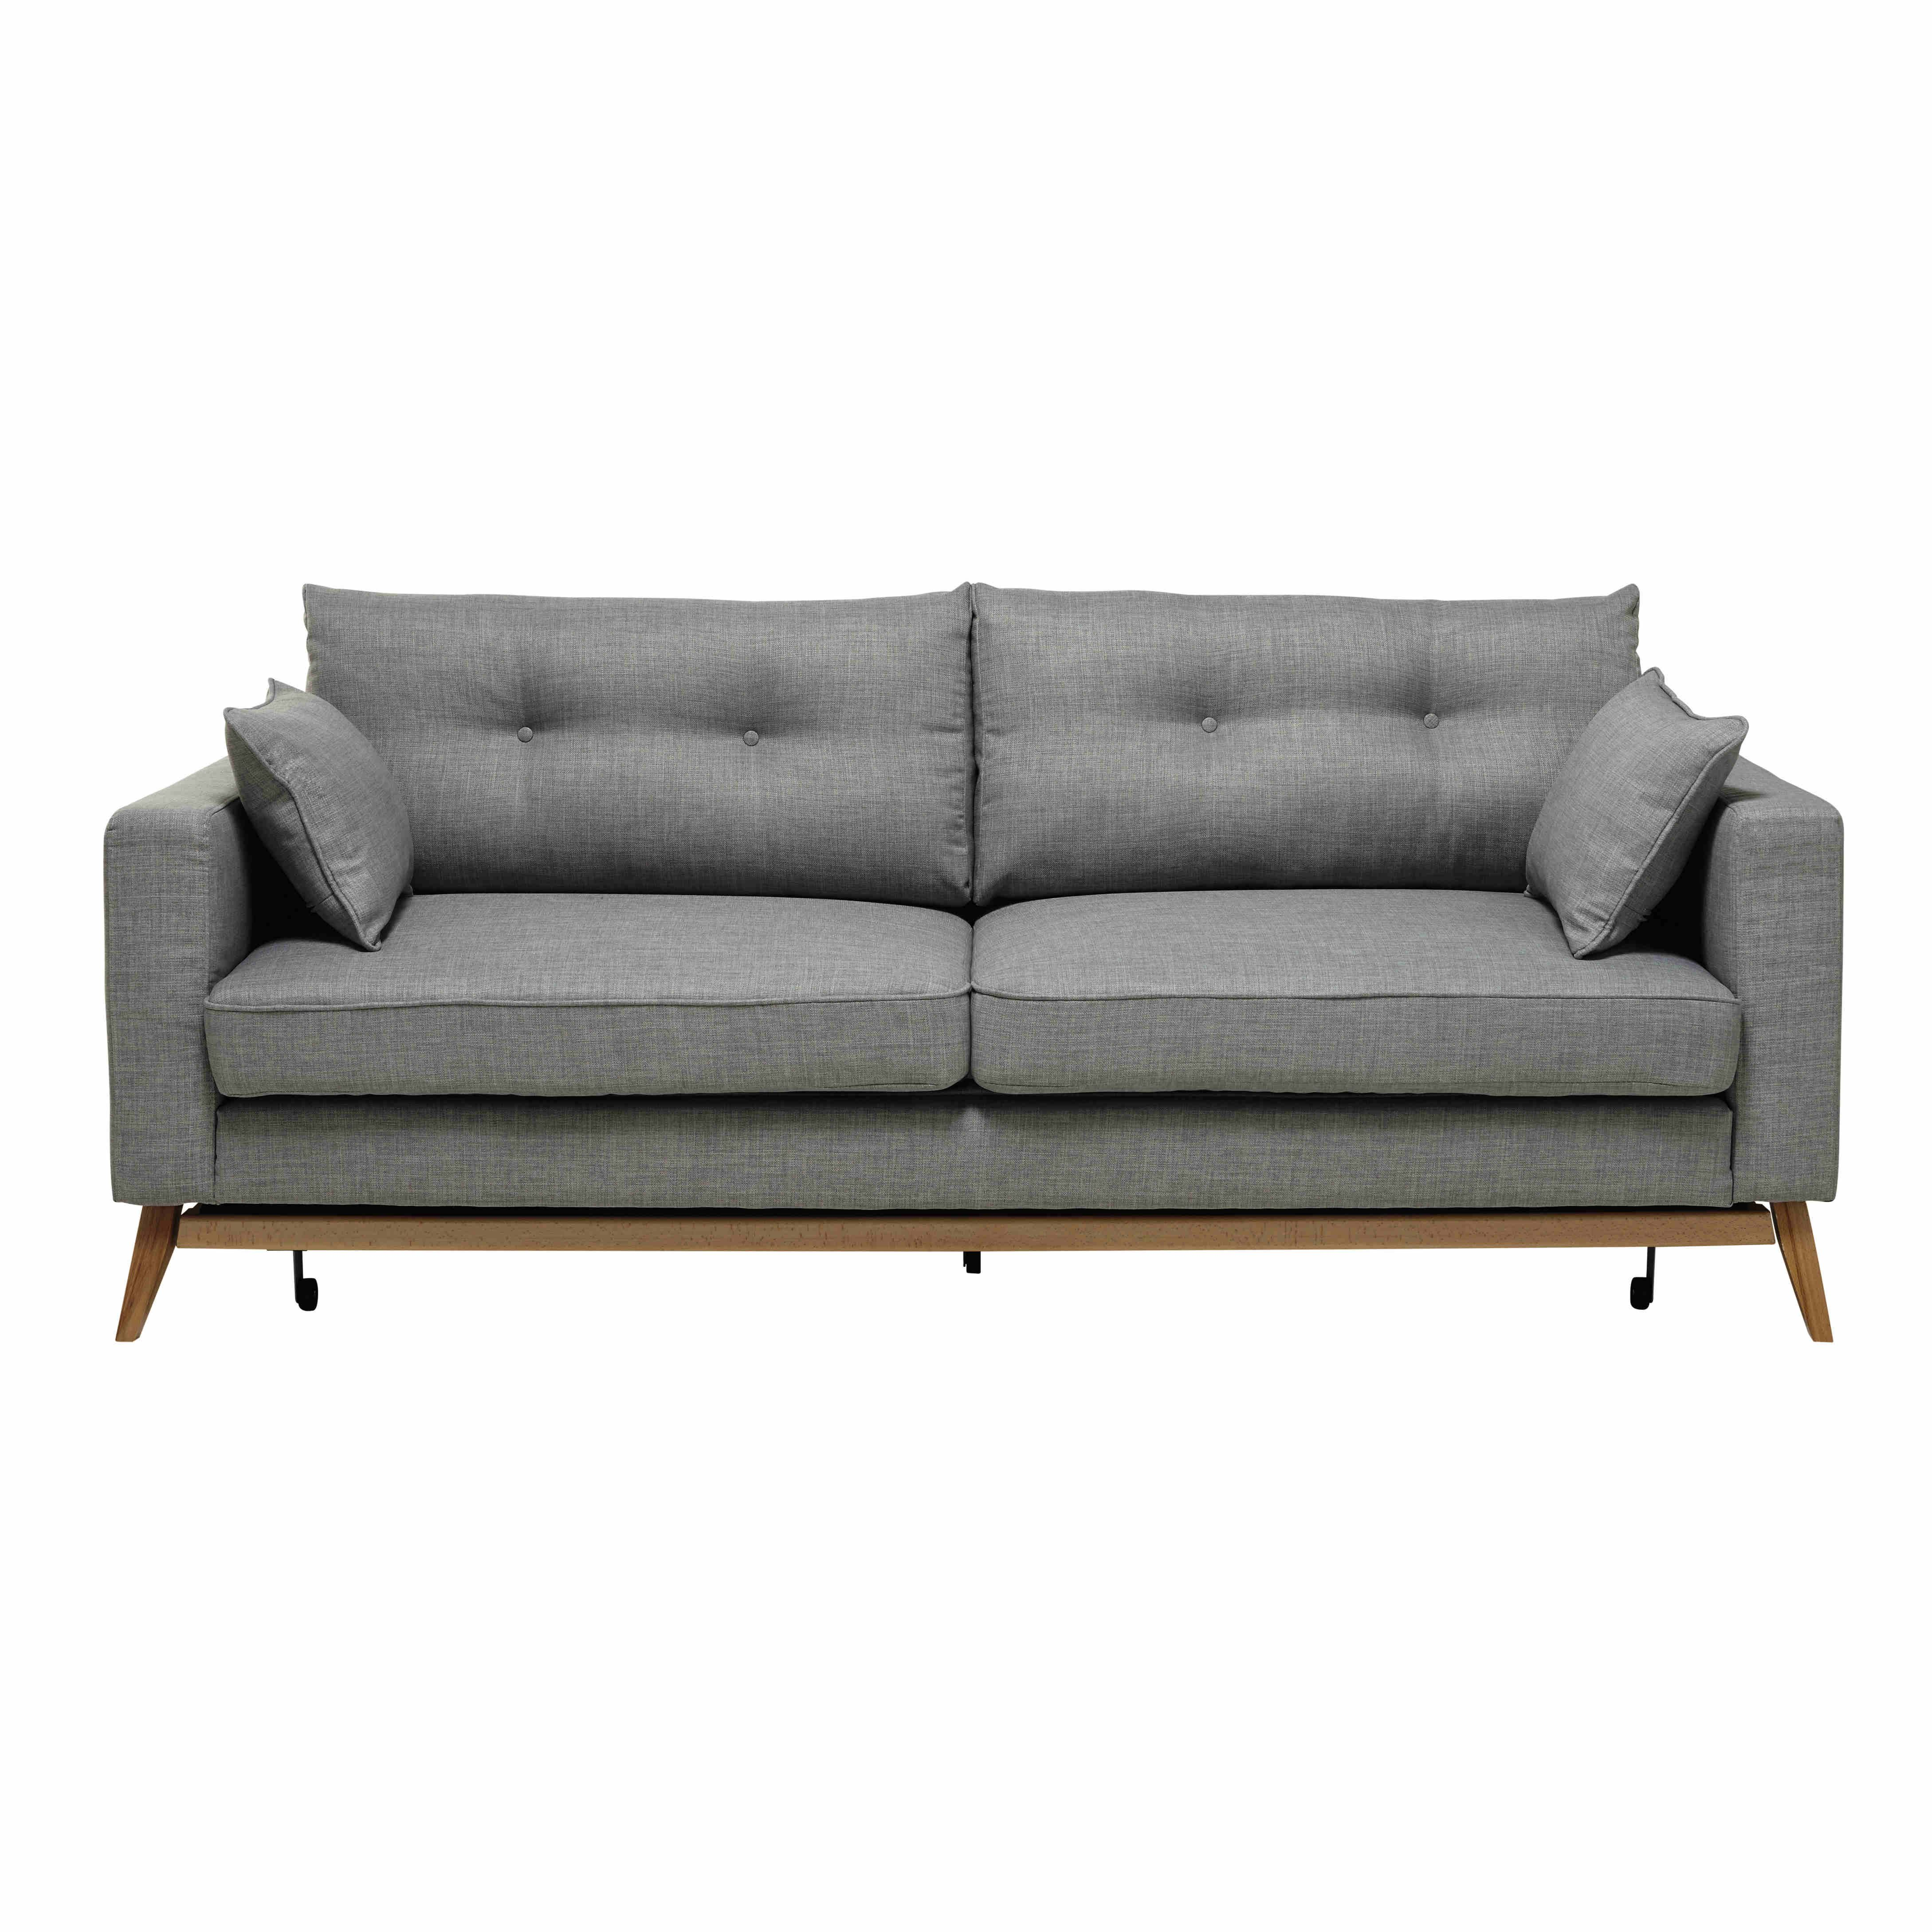 100% authentique 984bb 2e9eb Canapés | Canapés | Sofa, Sofa bed, Gray sofa